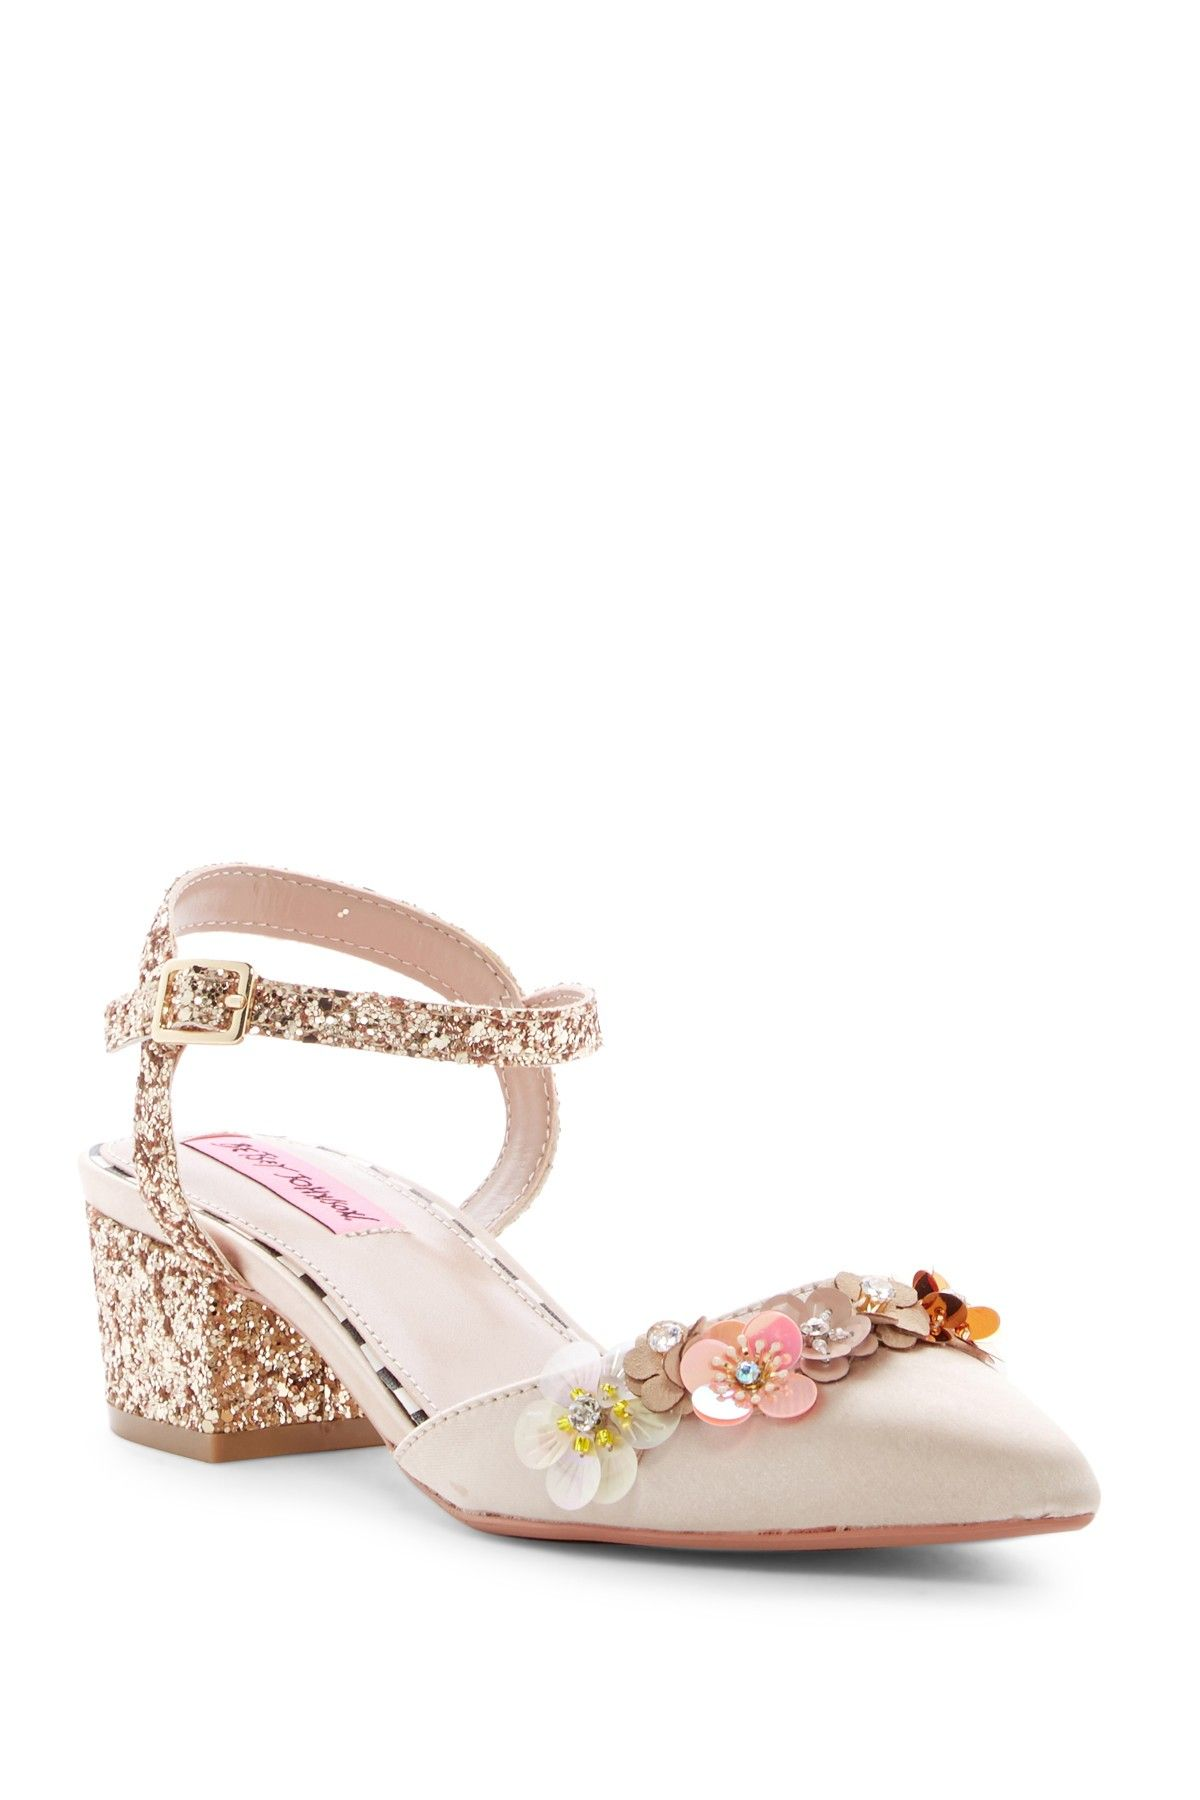 fbc23cca85d1 Ettah Block Heel Floral Sandal by Betsey Johnson on  nordstrom rack ...